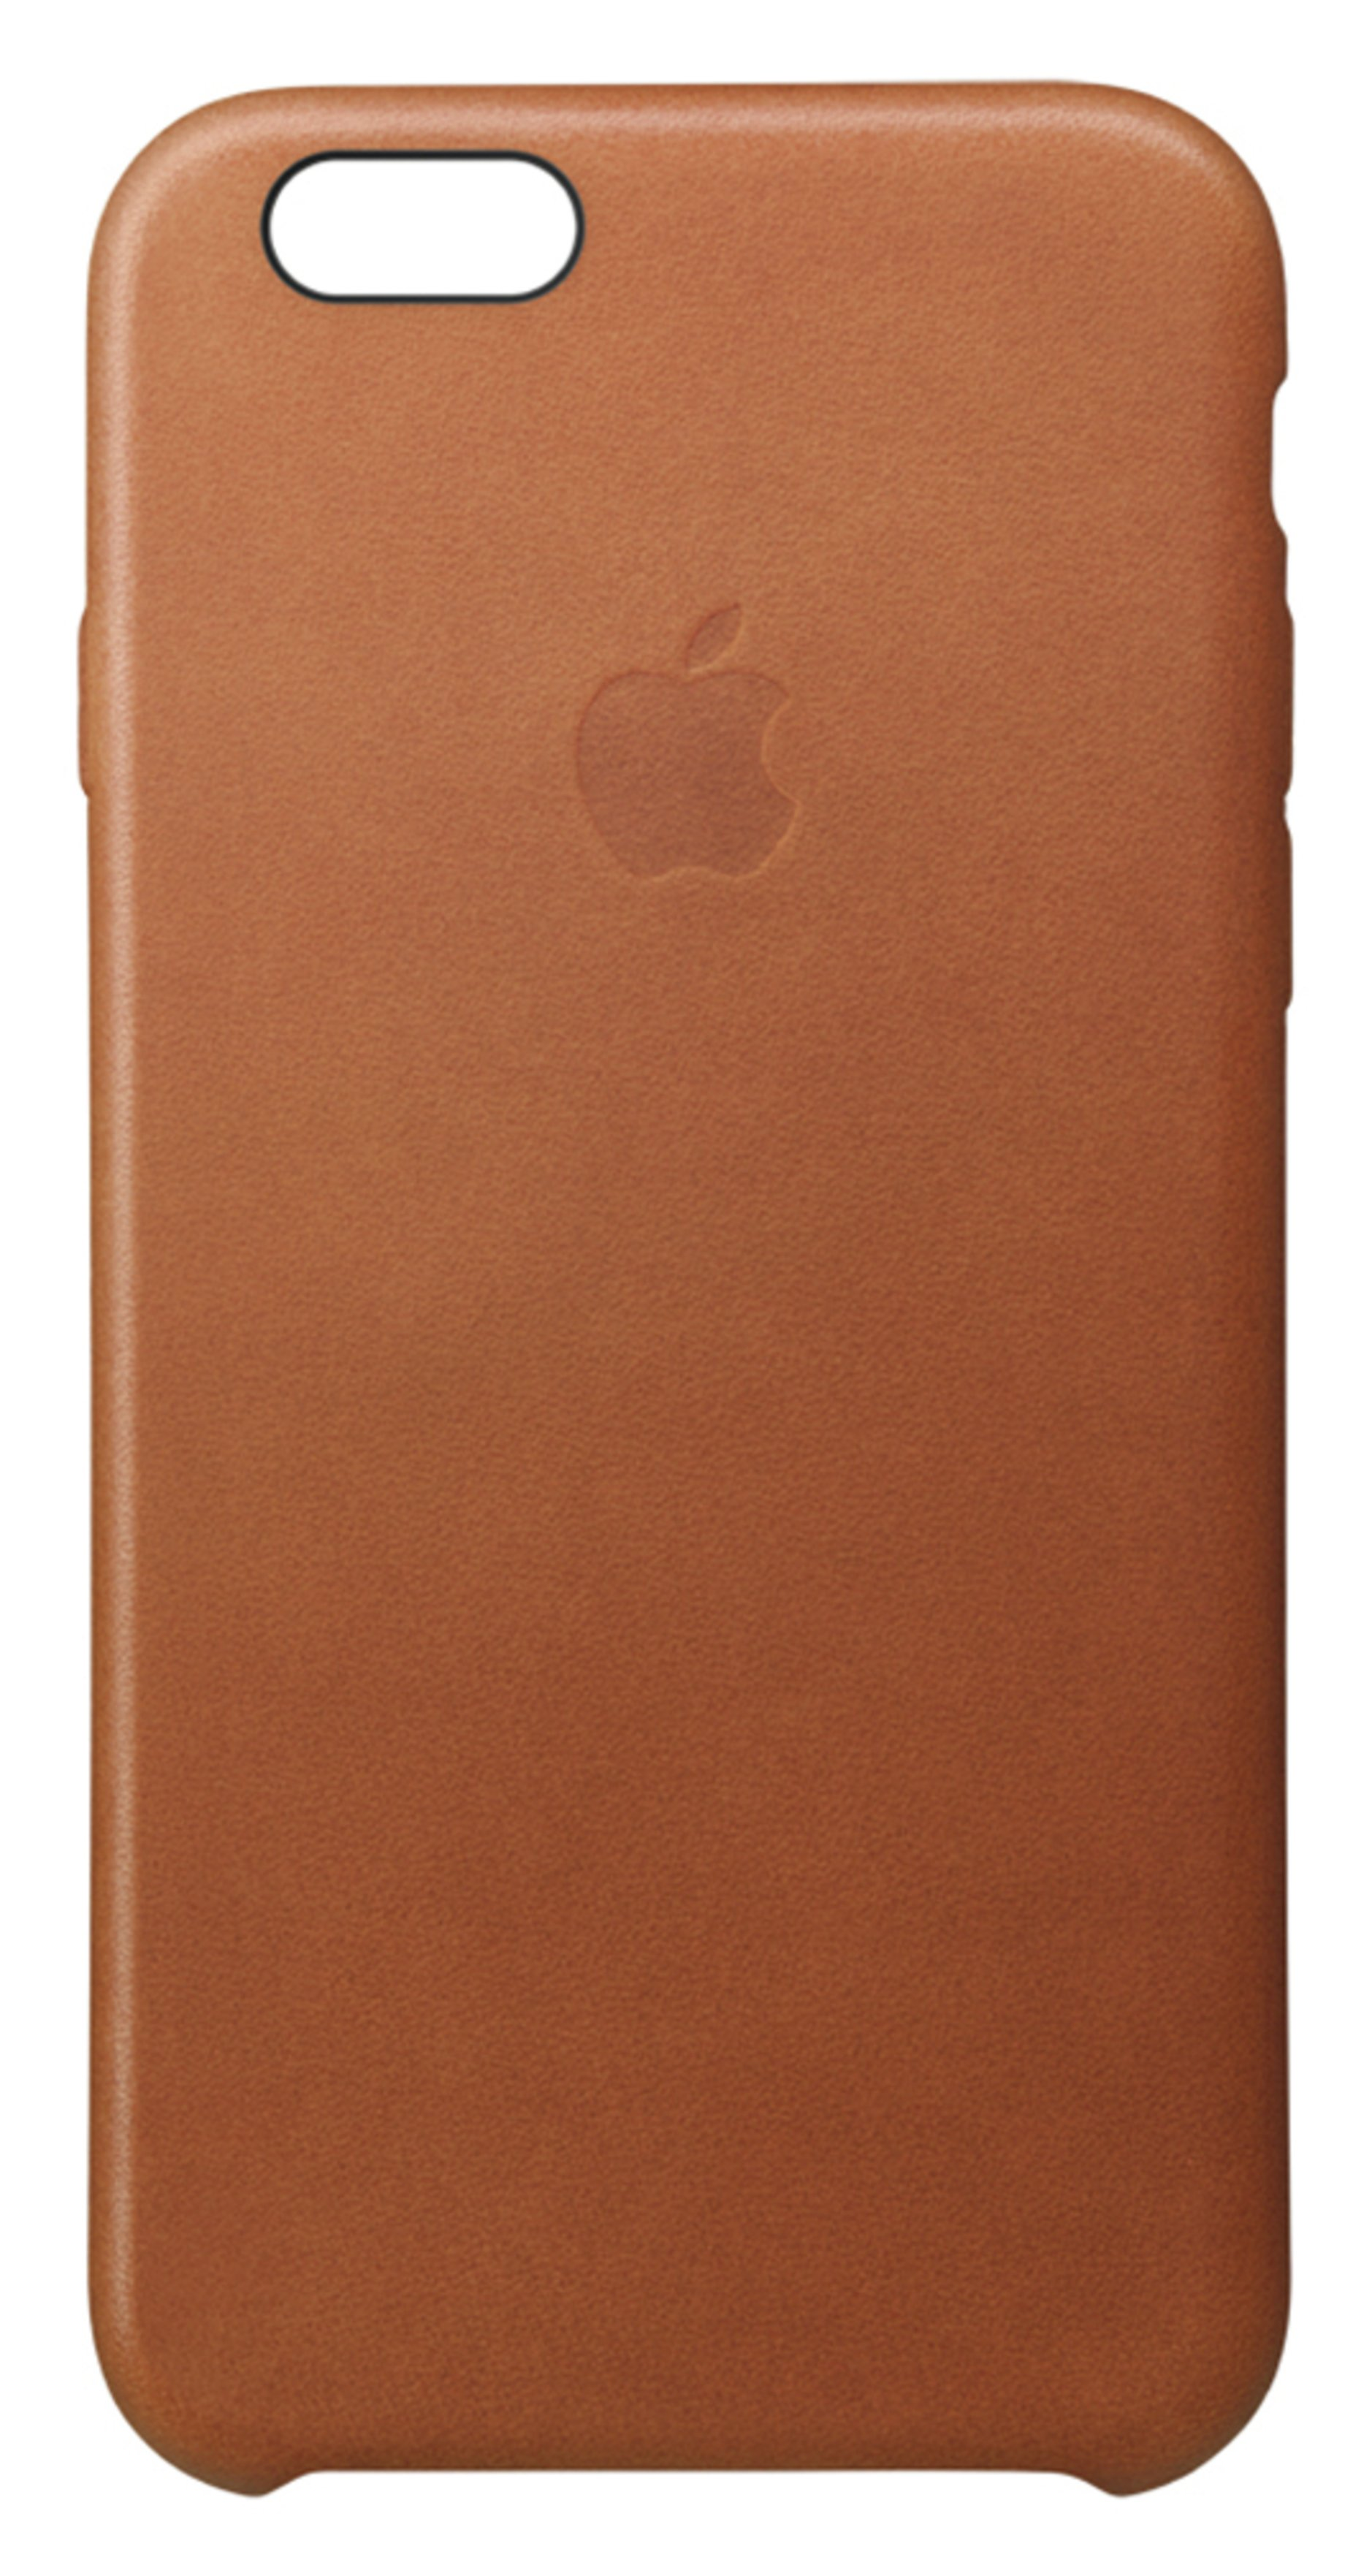 Apple iPhone 6S 6 Leather Case Saddle Brown cheapest retail price